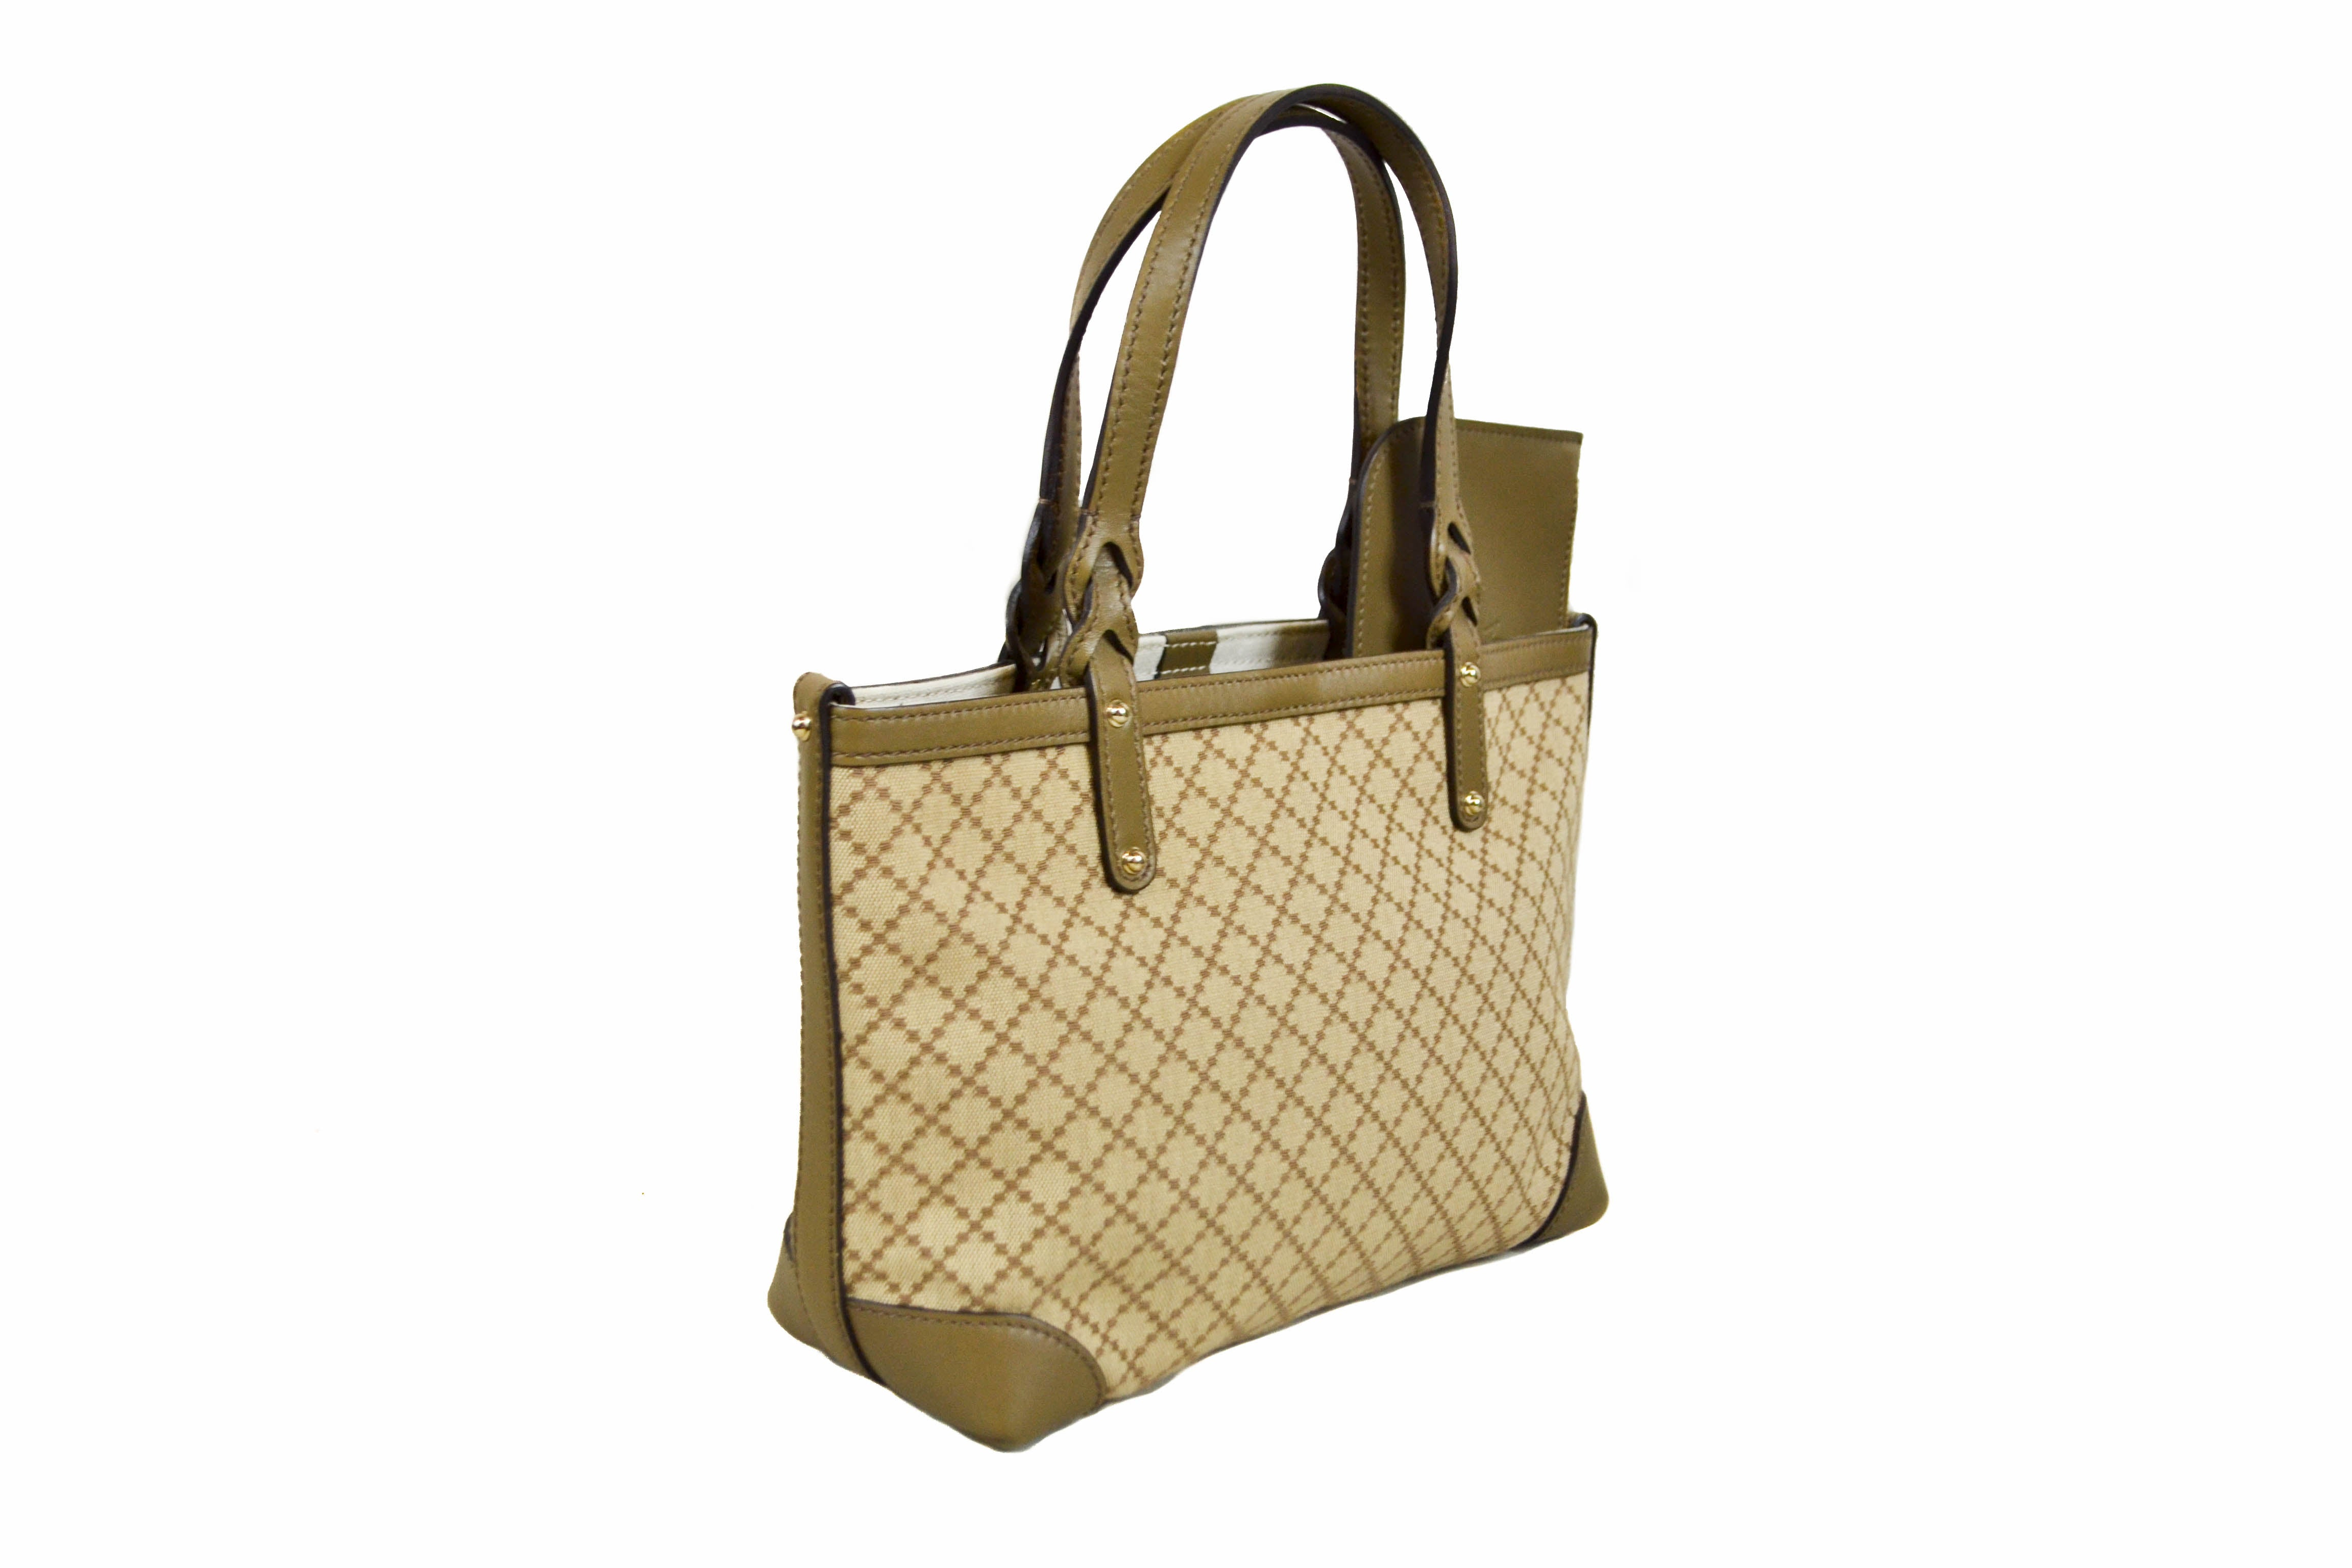 Authentic New Gucci Olive Green Small Tote Shoulder Bag 269878